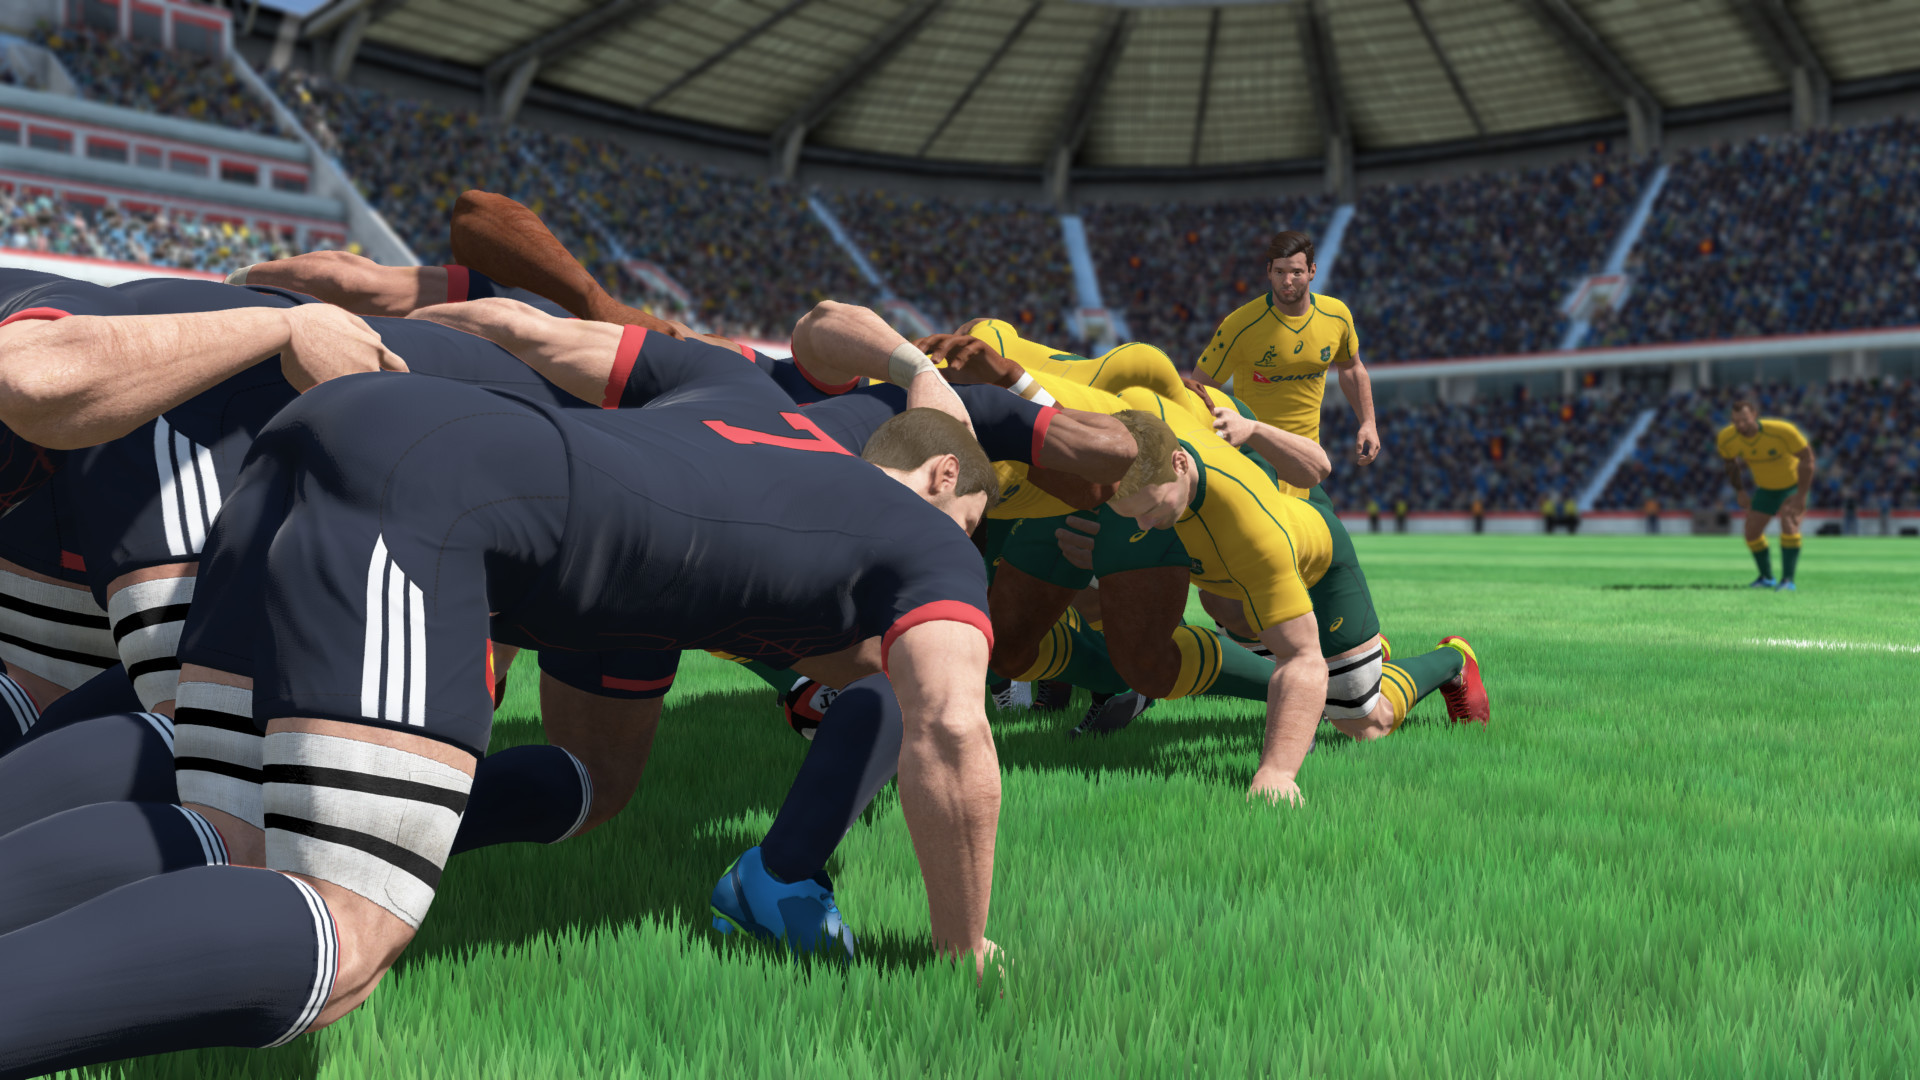 Rugby 18 review | NAG